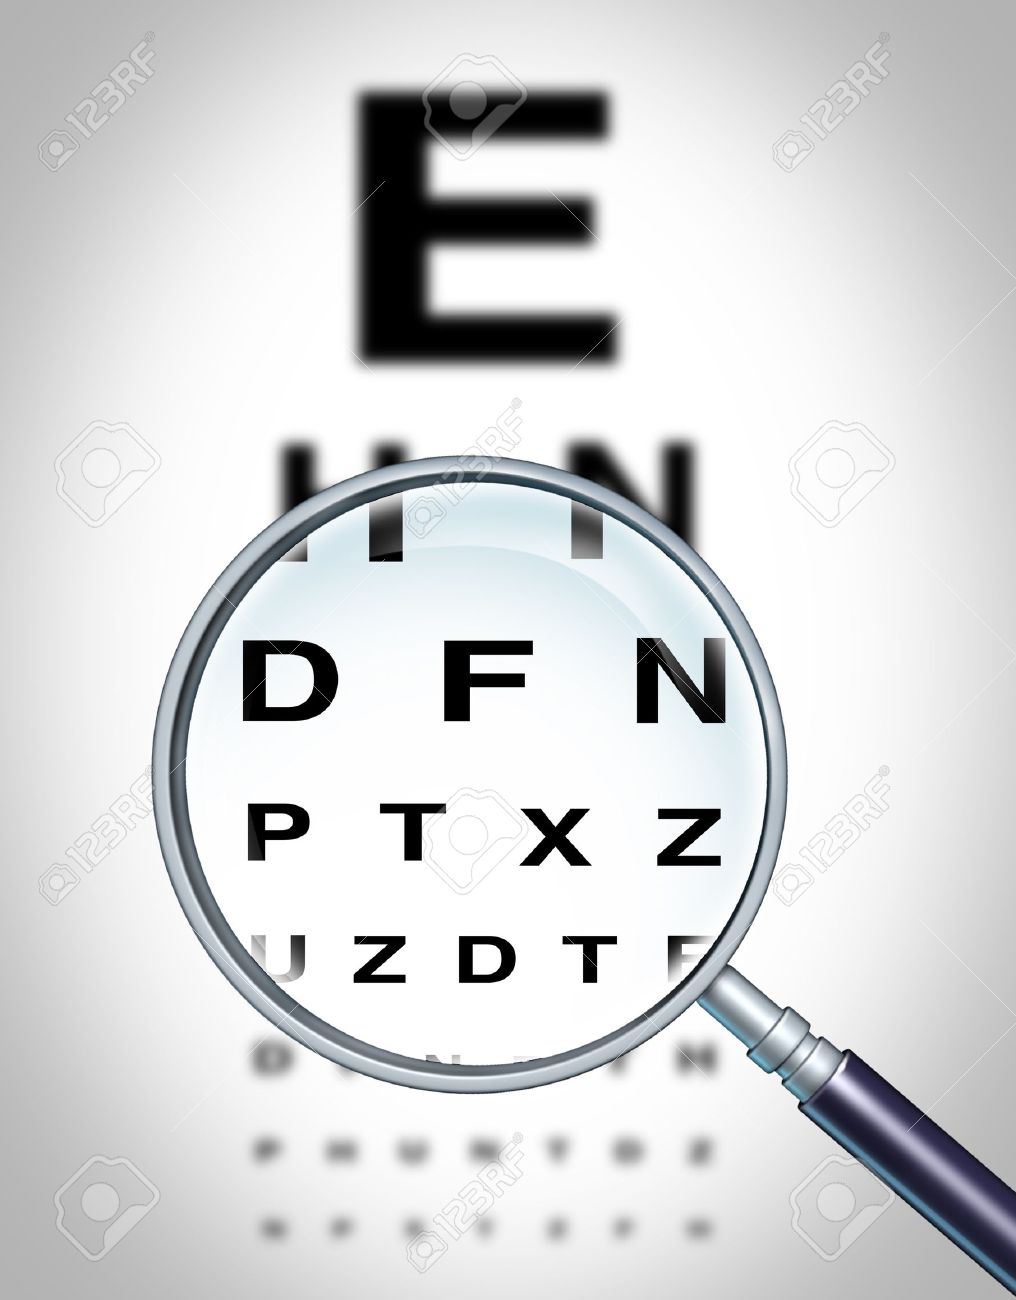 Human eye vision chart and sight medical optometrist symbol for the Ophthalmology department in ahospital with a magnigying glass focusing on the blurred diagram. Stock Photo - 12354004